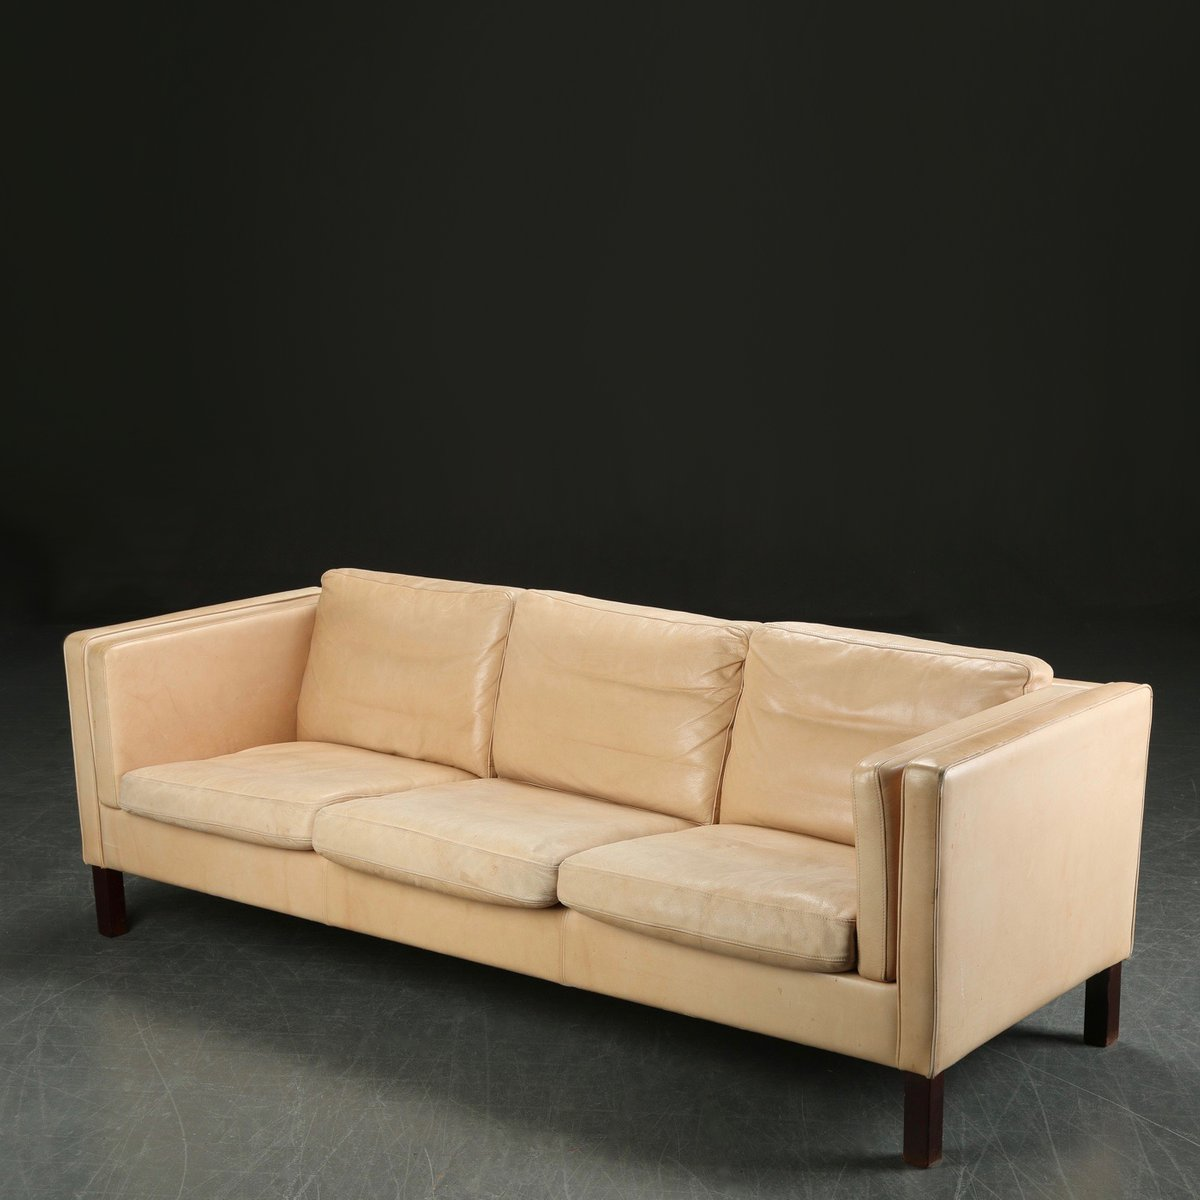 Vintage danish long cream leather sofa for sale at pamono for Cream leather sofa